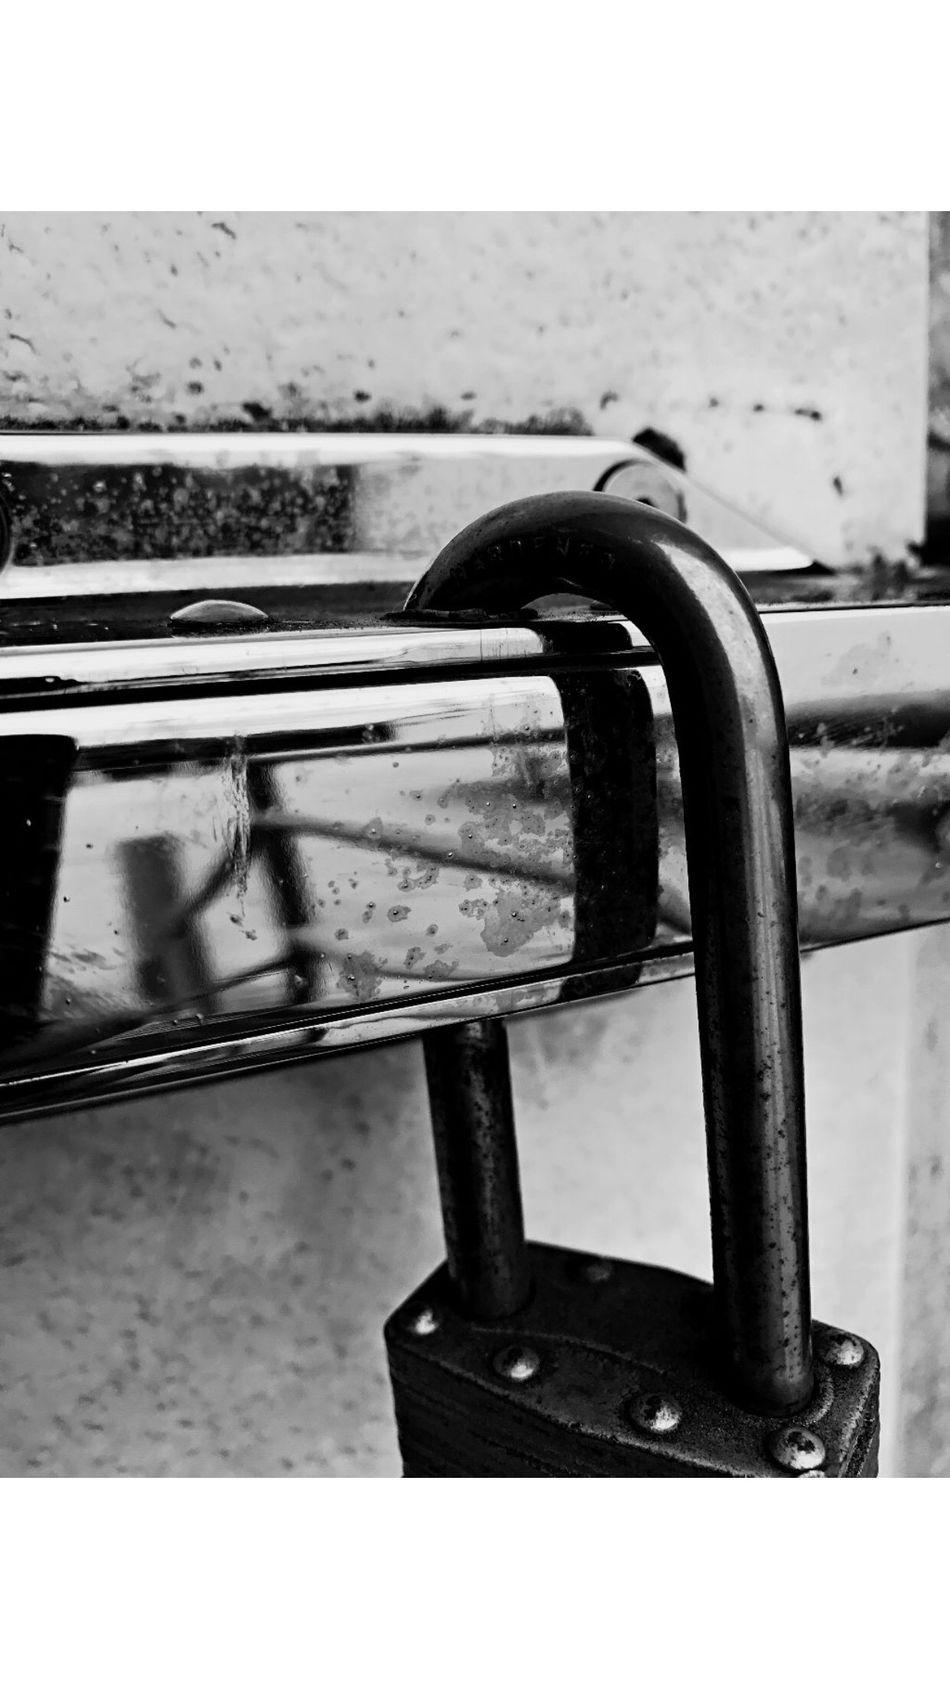 Metal Lock Close-up Blackandwhite